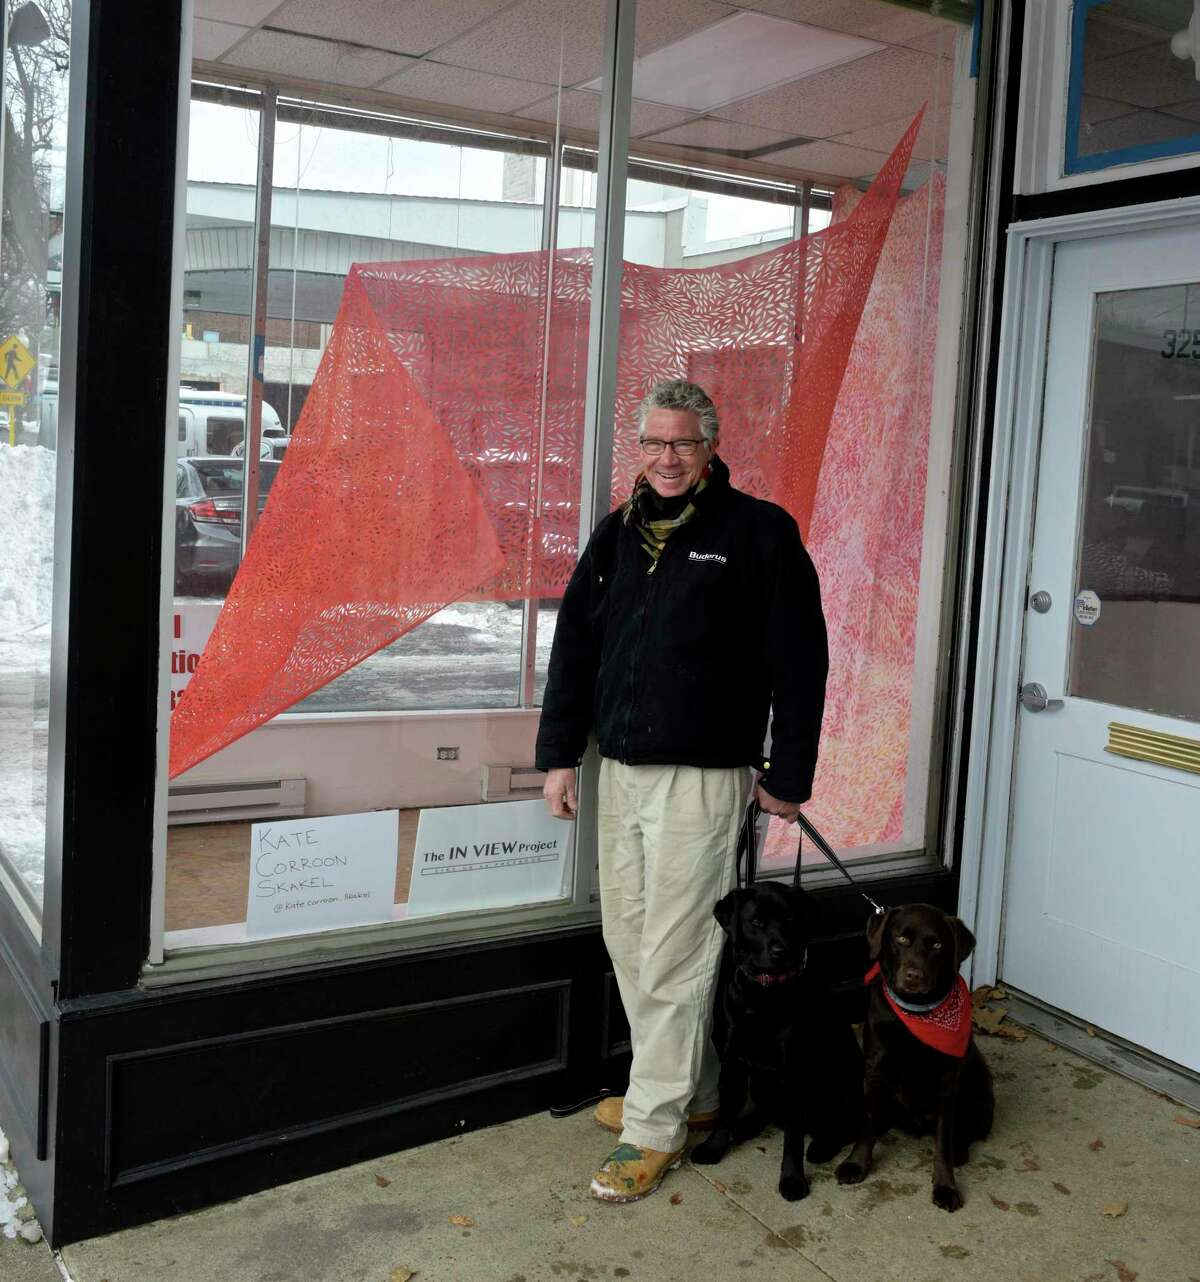 The In View project is taking vacant storefronts in downtown Danbury and turning them into mini art exhibits. Landlord Mark Nolan has done that with 325 Main Street, in Danbury, Conn, where artist Kate Corroon Skakel has work on display. Friday, December 18, 2020. With Nolan are Zelda, left, and Tula.